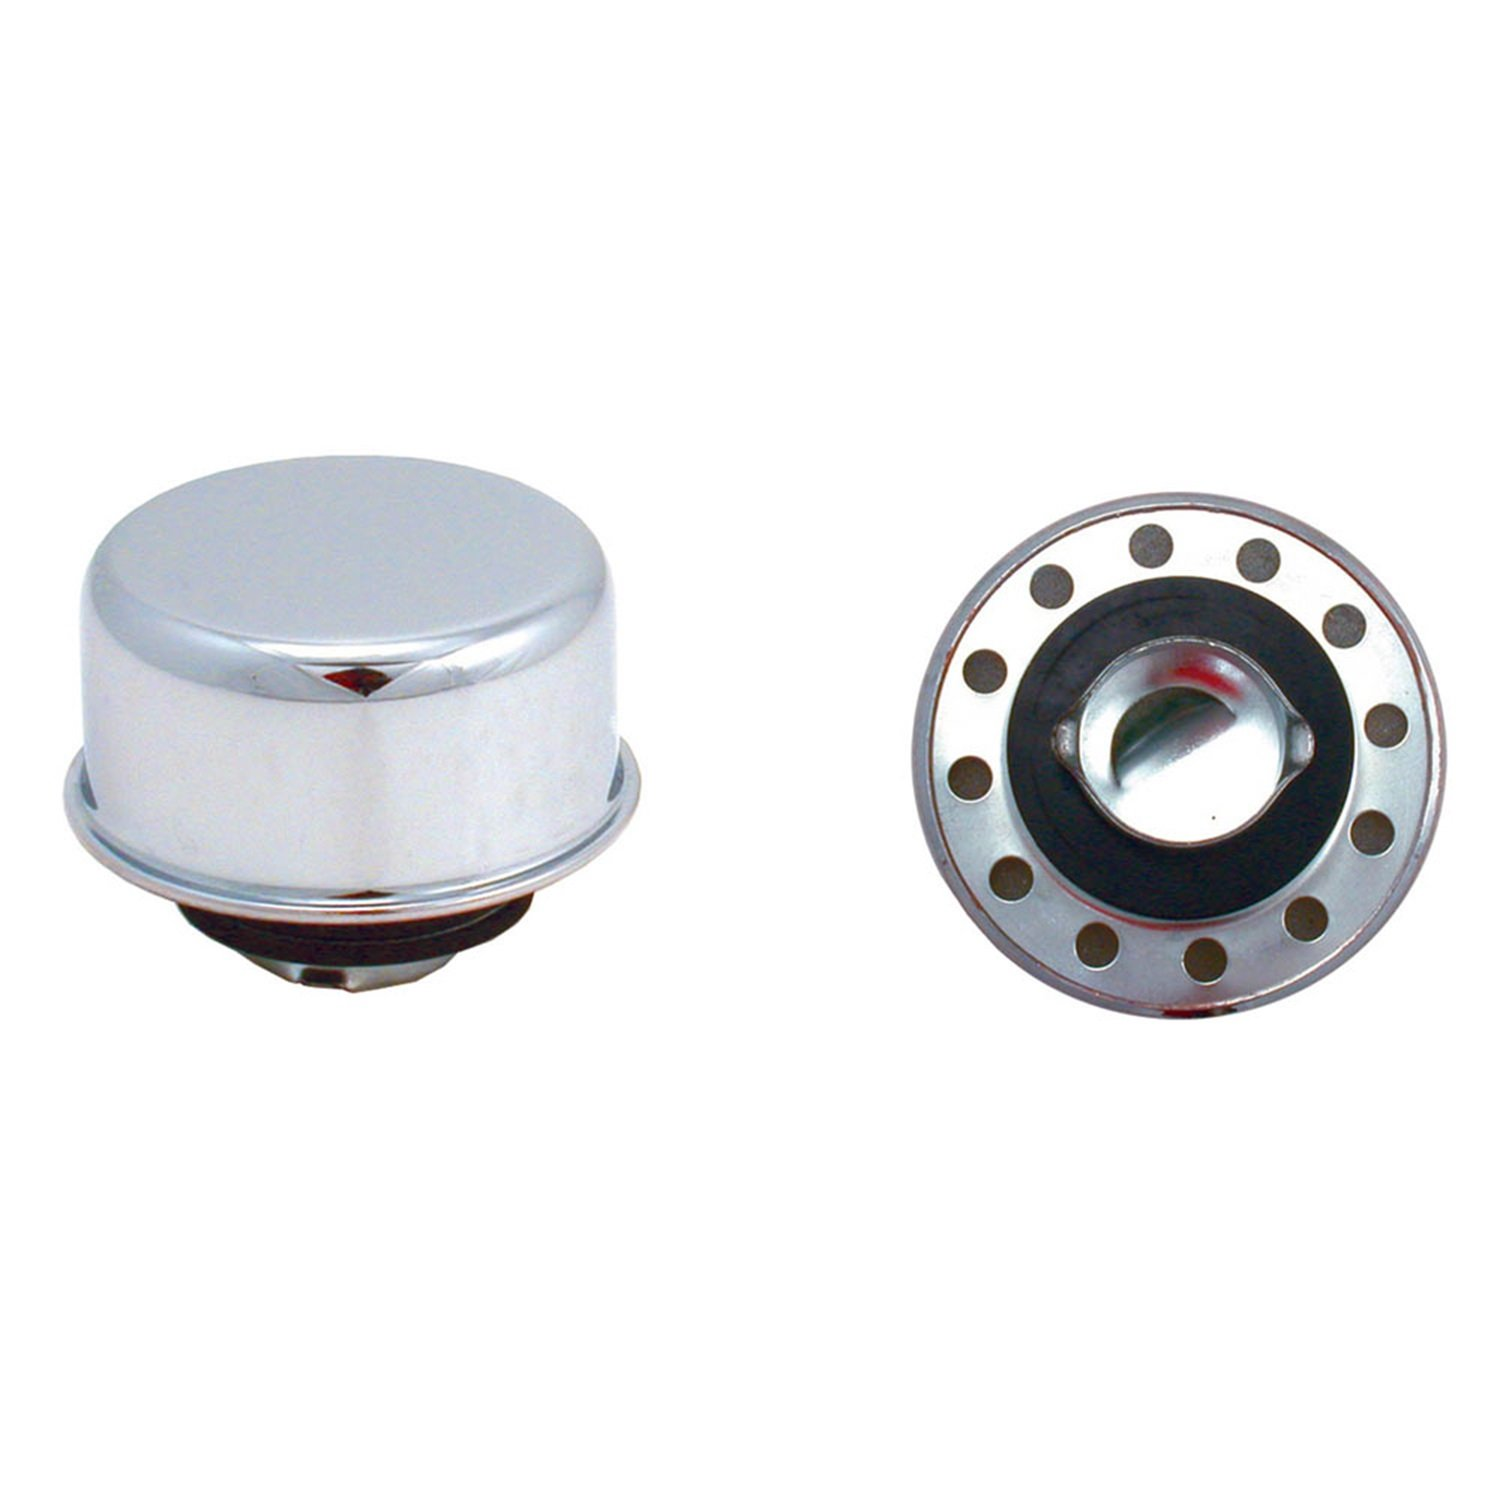 Spectre Performance 4273 Twist-In Oil Filler Breather Cap SPE-4273